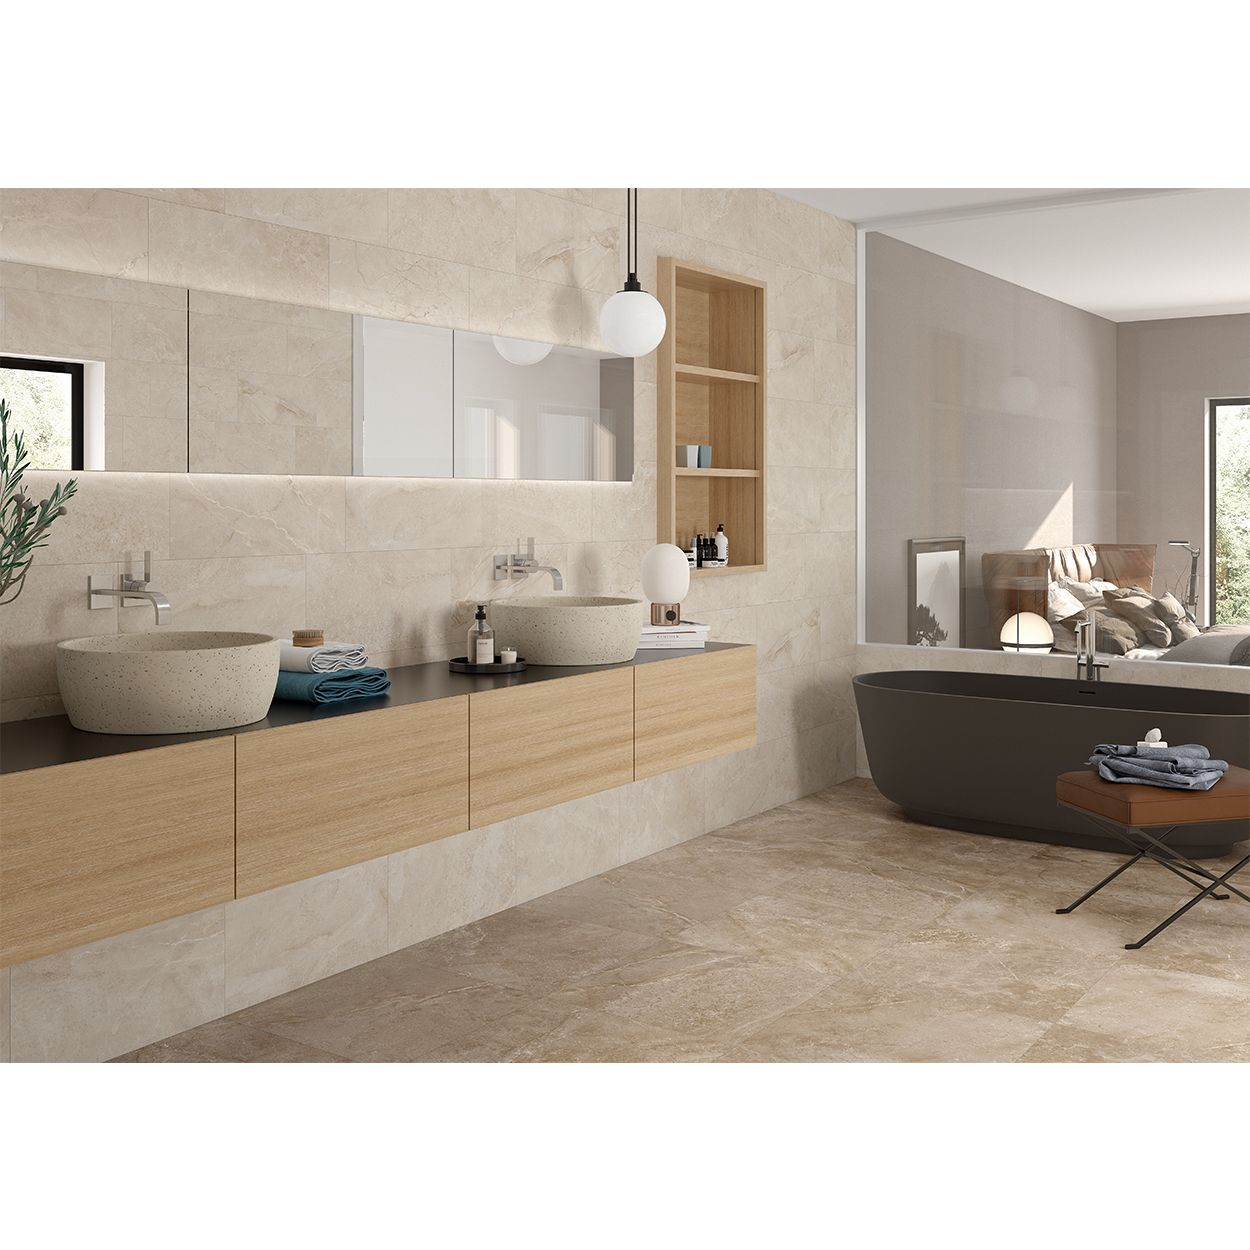 Dumawall Tiles Bring An Elegant Finish To All Indoor Walls In 2020 Tiles Wall Cladding Tongue And Groove Walls